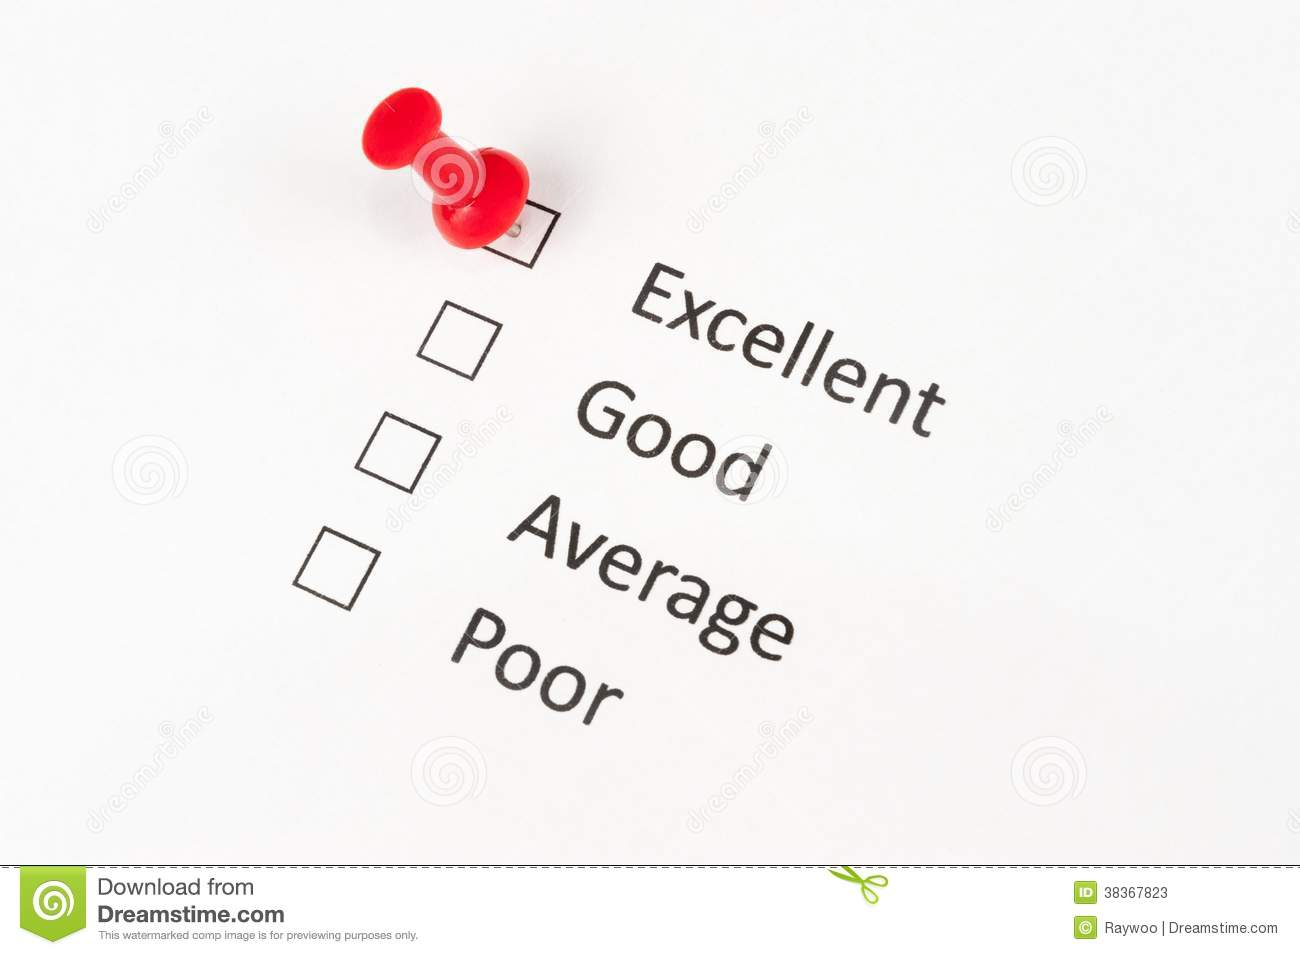 how to respond to an excellent performance review